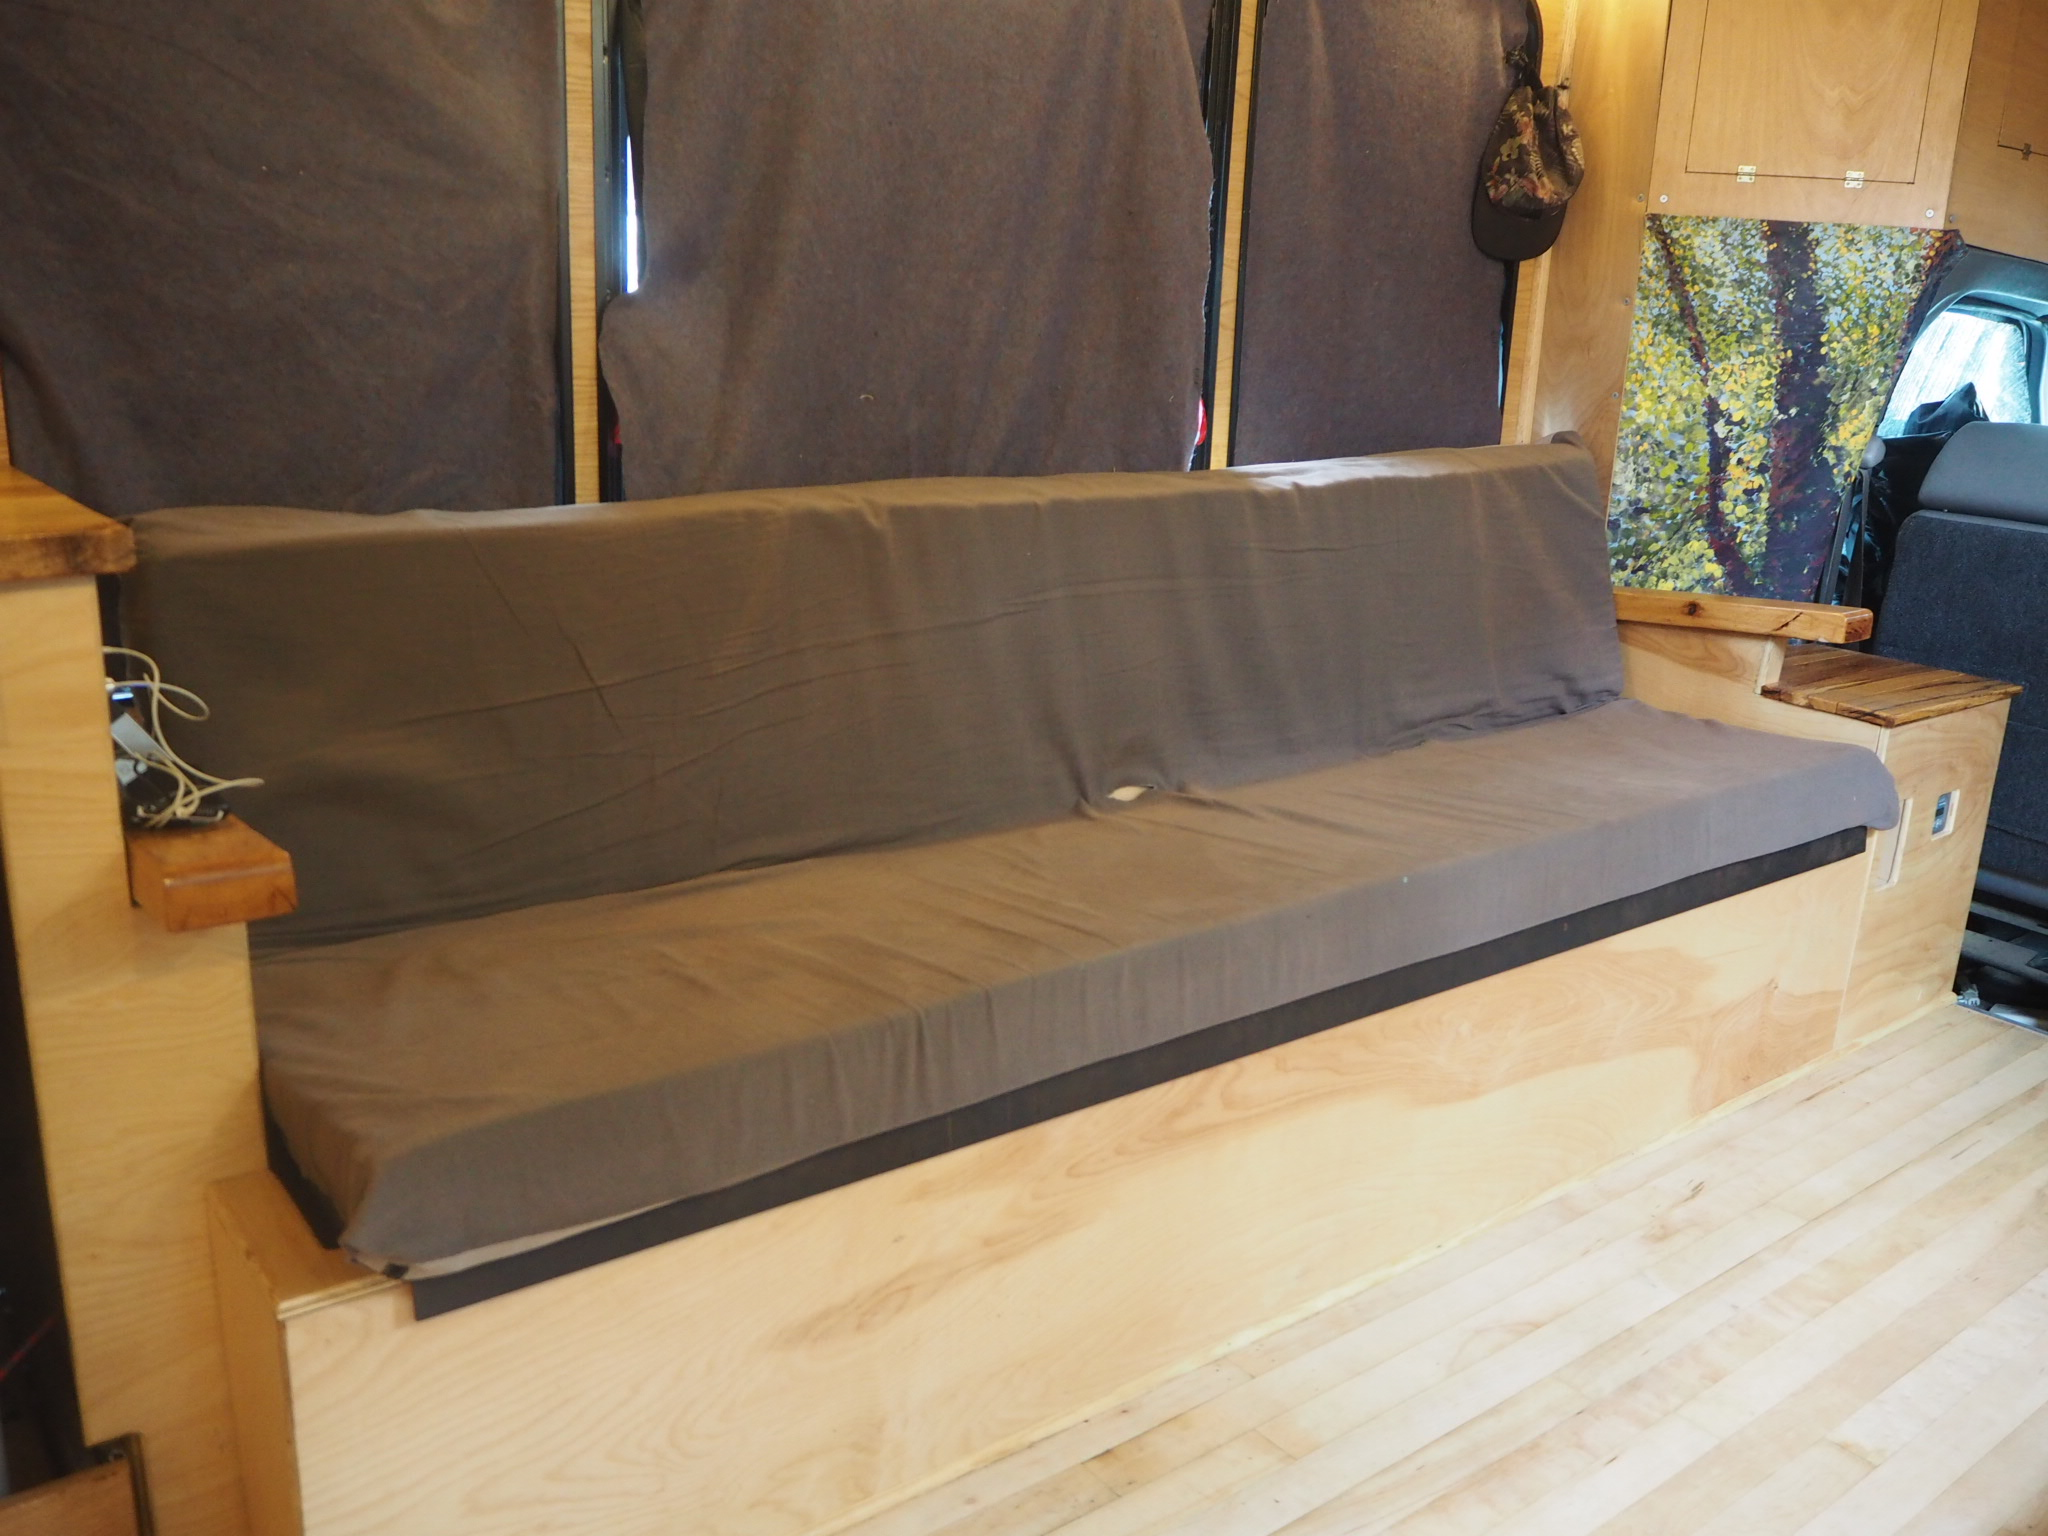 Swell Rock N Roll Hinge Bed Couch Pros And Cons The Build Van Theyellowbook Wood Chair Design Ideas Theyellowbookinfo